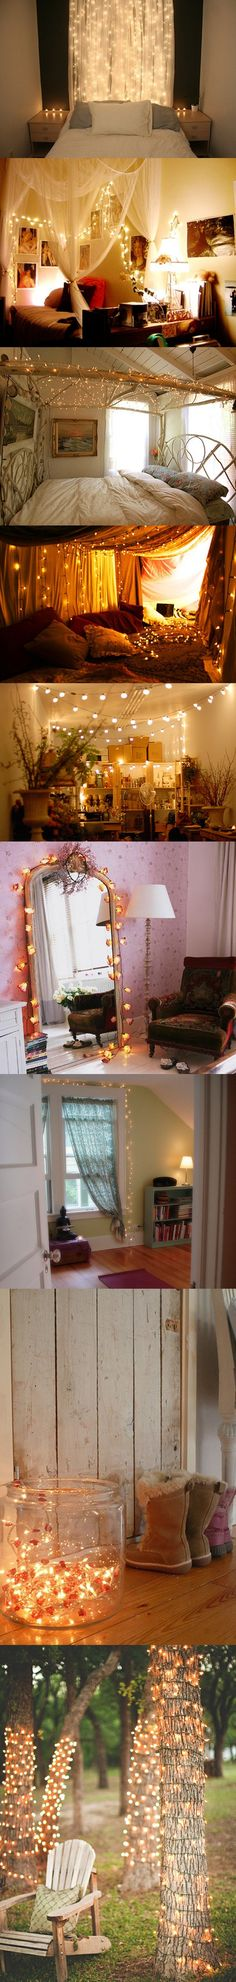 Different ways to use christmas lights in your home year round! Love it